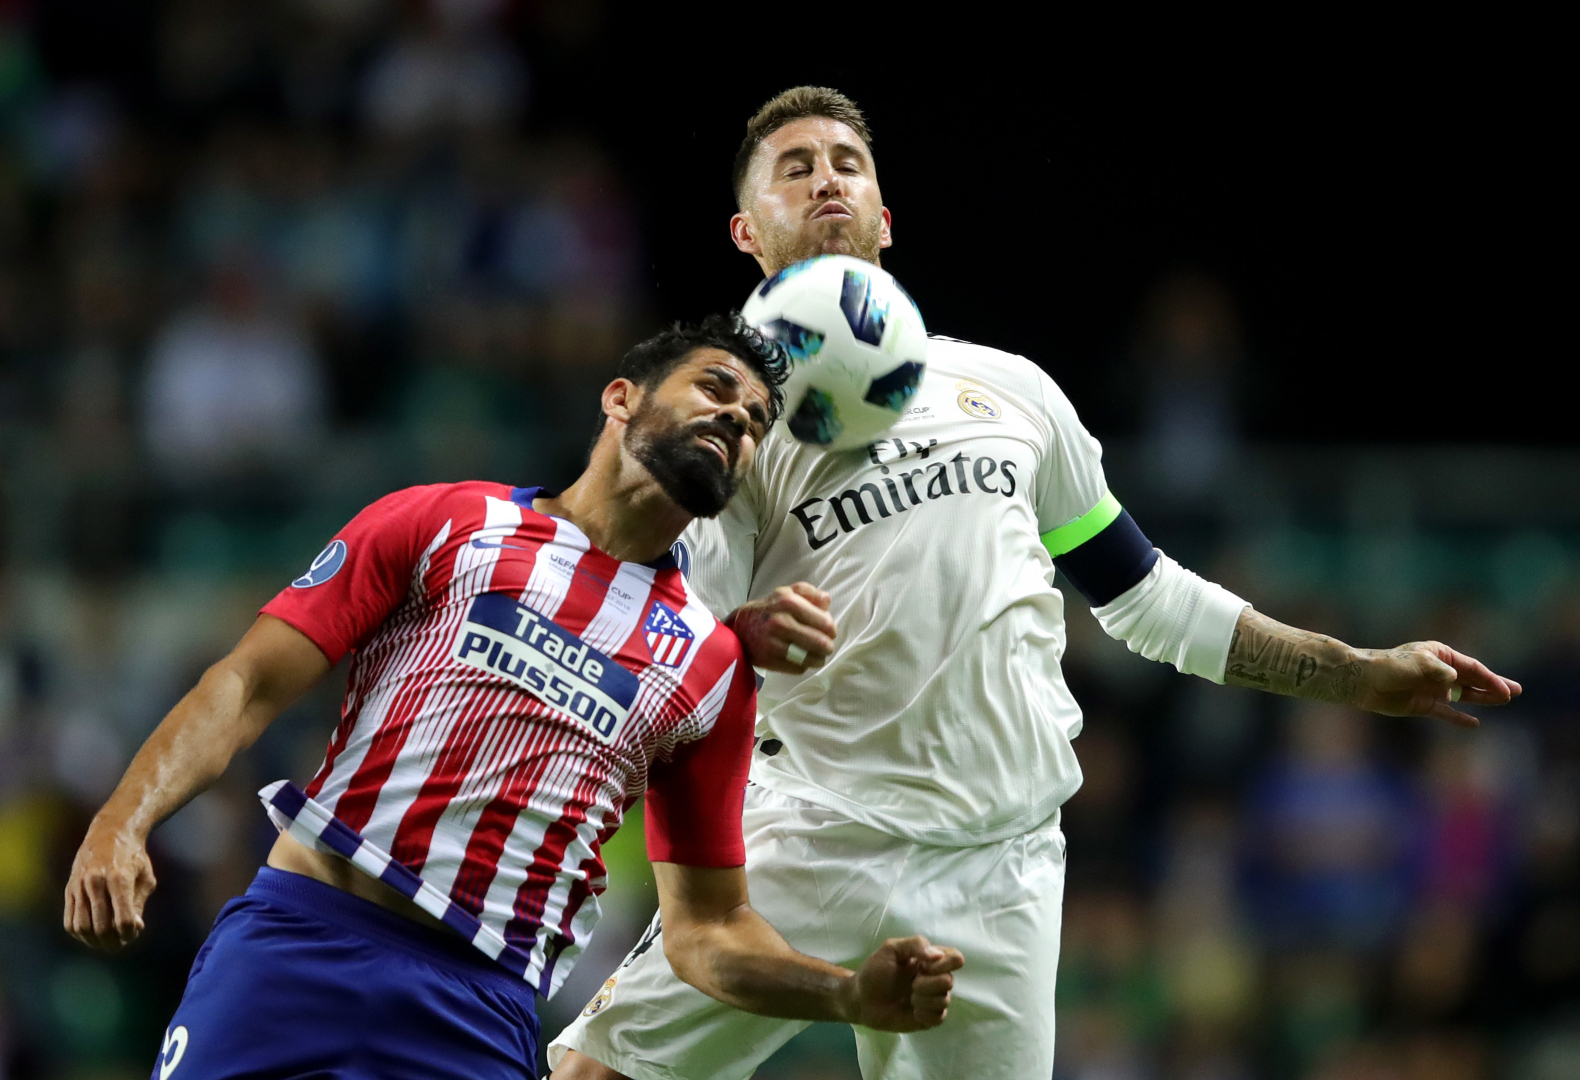 Diego Costa Sergio Ramos Real Madrid Atletico Madrid 15/08/2018